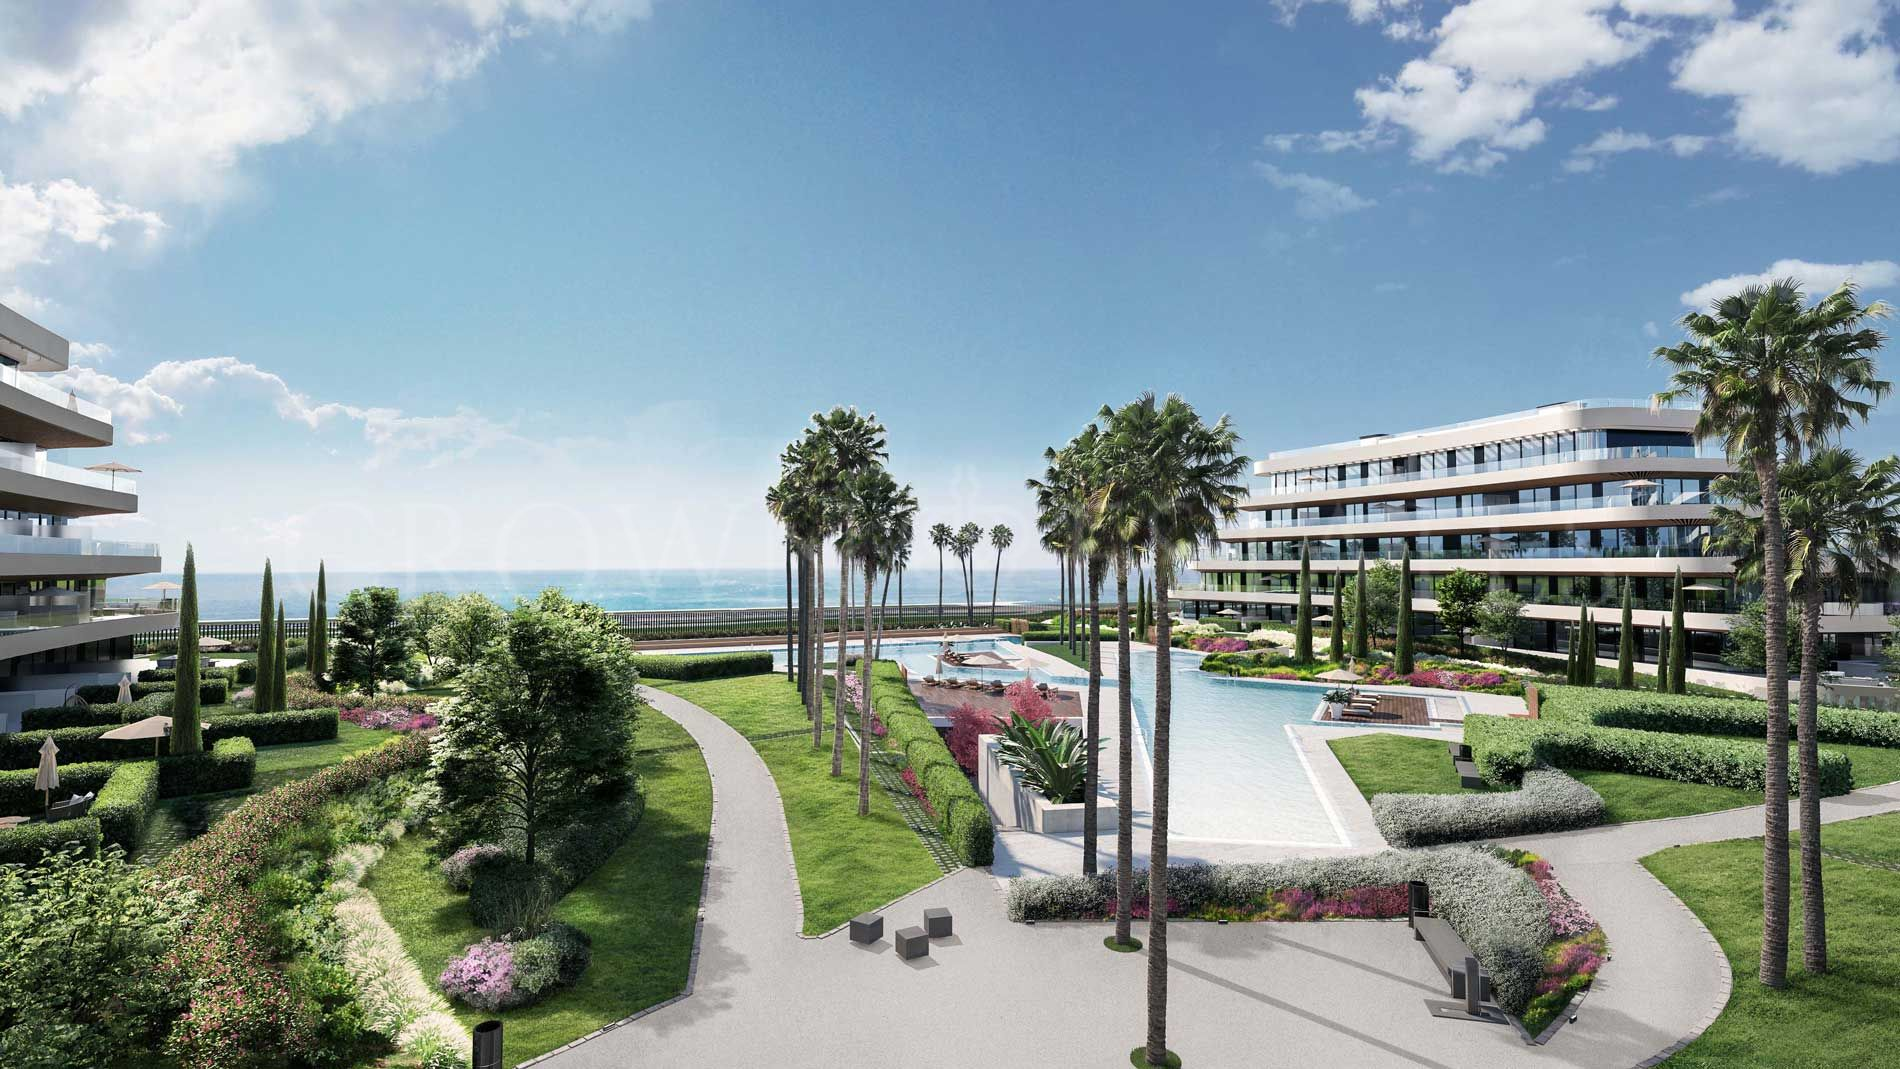 104 apartments of 1,2,3 and 4 bedrooms located on the beachfront. Just at 800 metres from the Parador Málaga Golf and 10 minutes far from Málaga city centre.